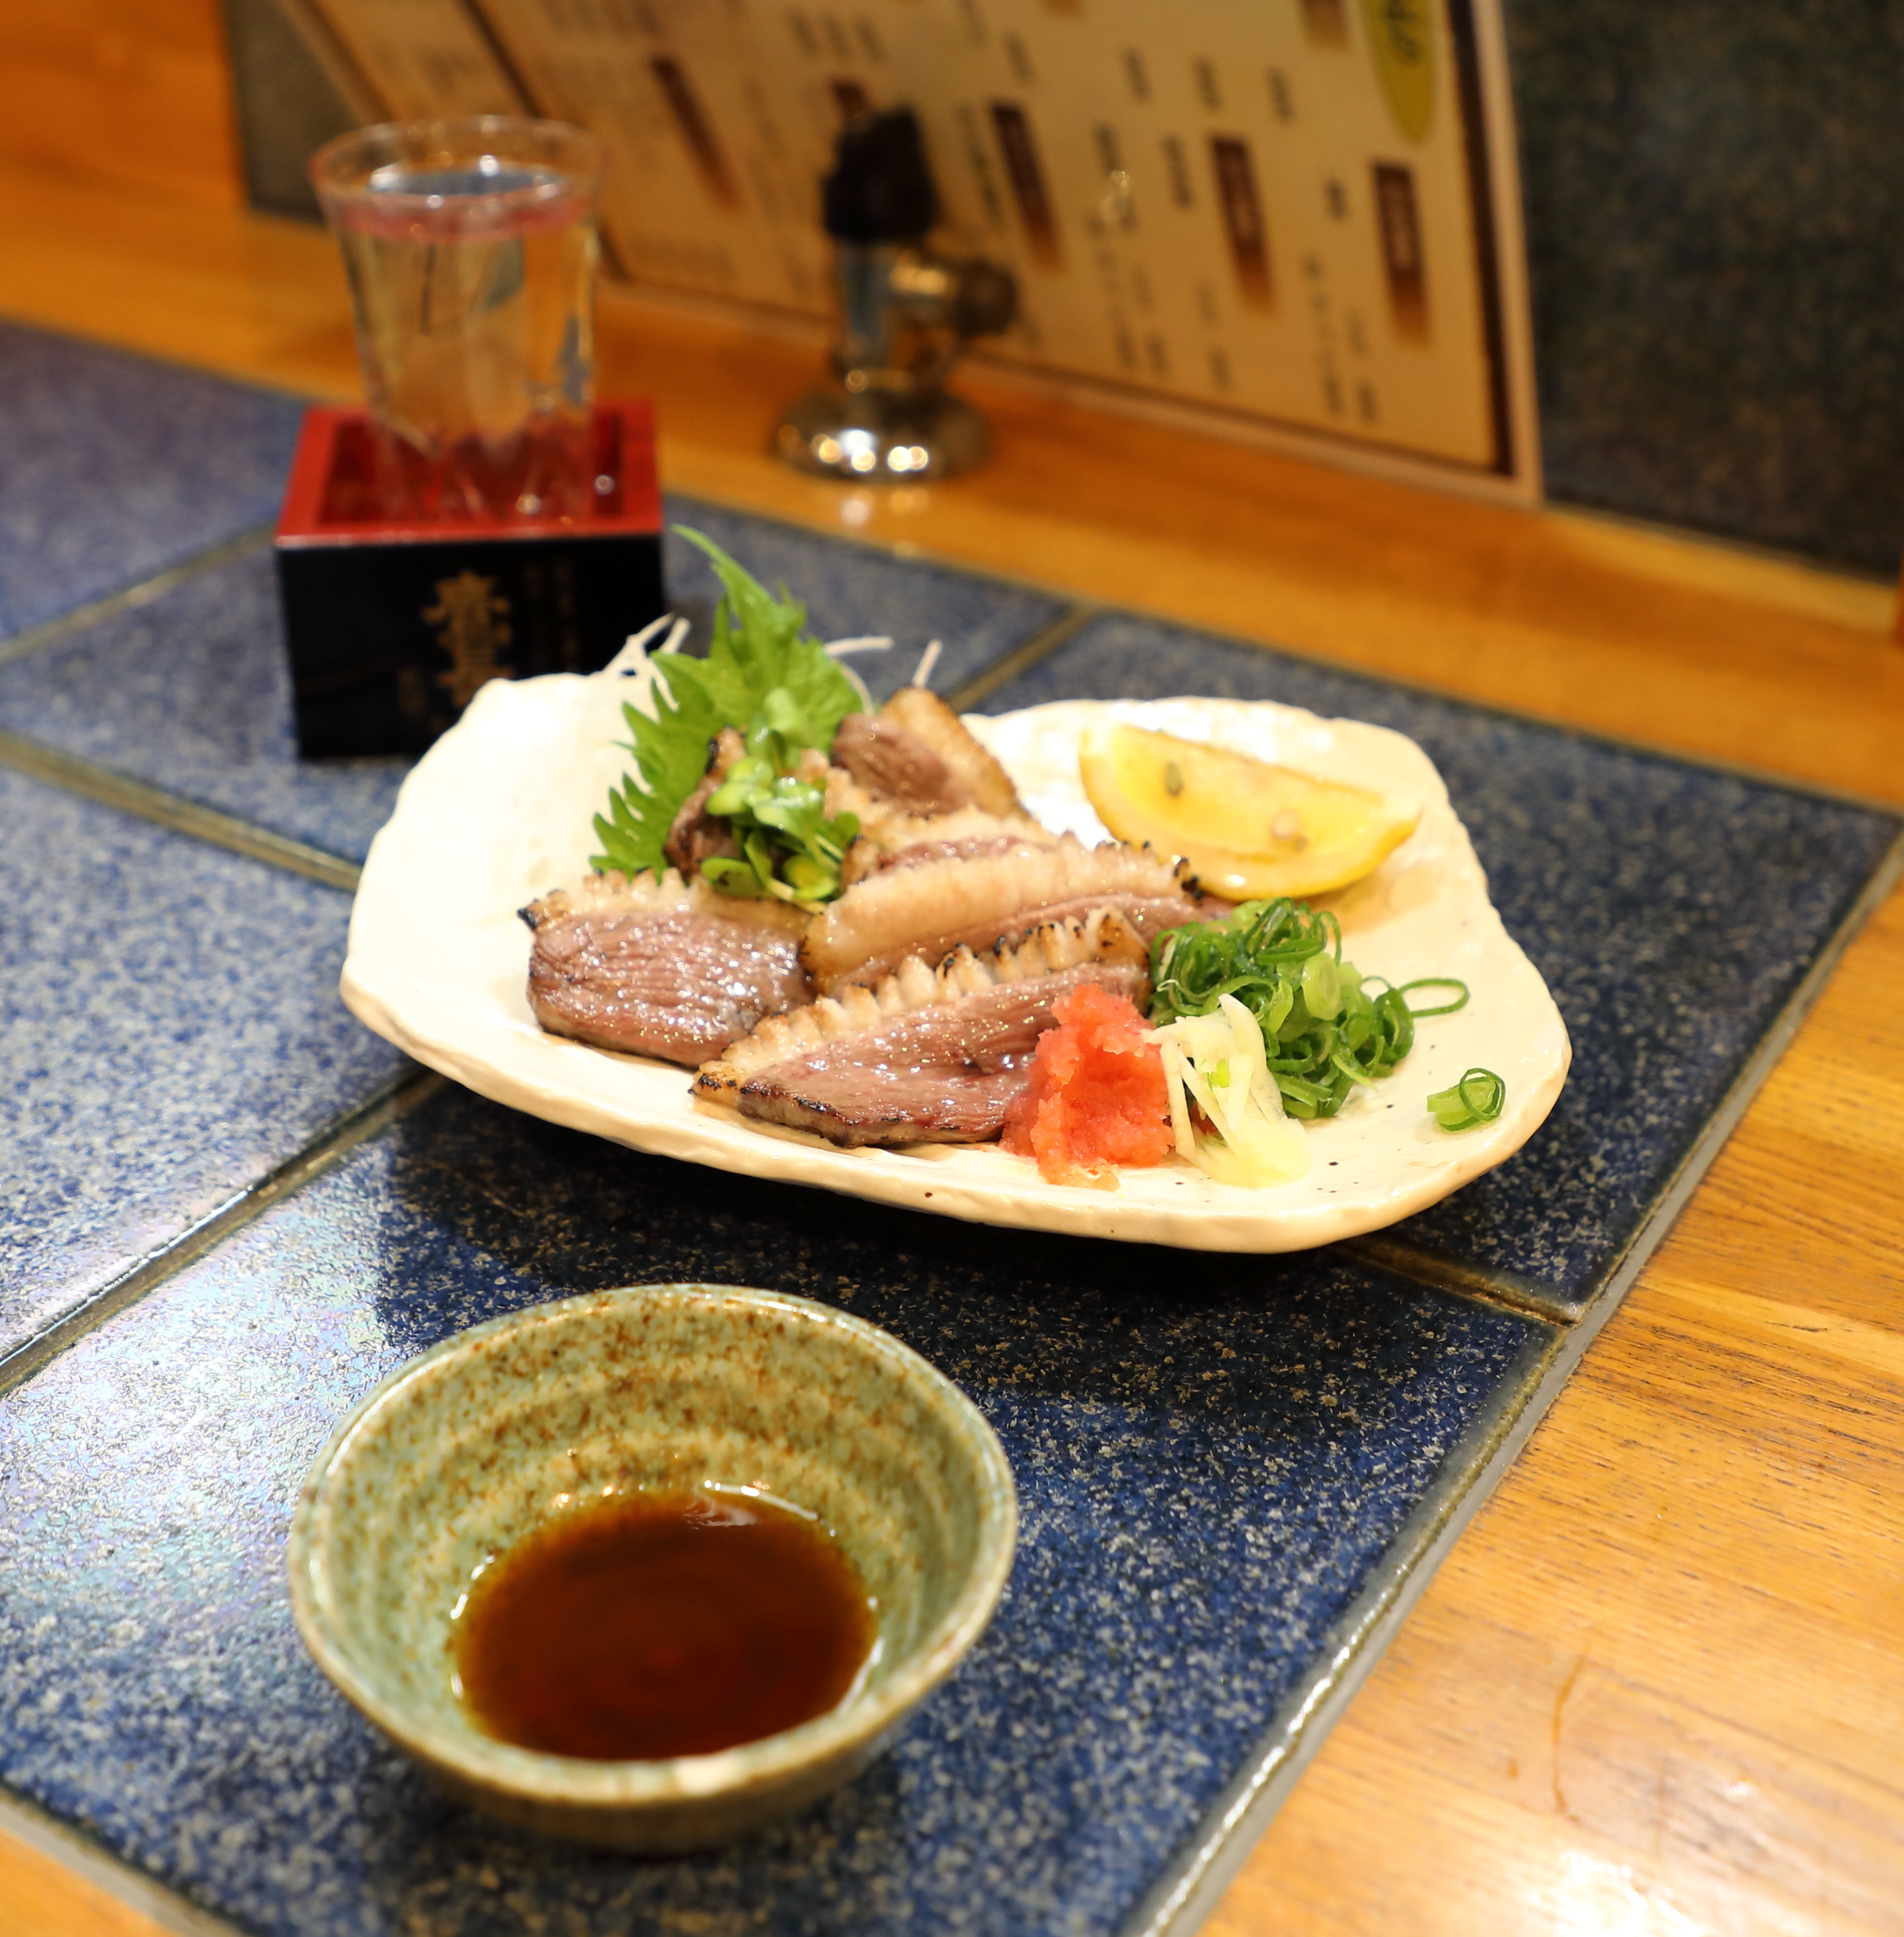 Sake was spritzed on the slices of duck breast before grilling them over a flame to help them brown. It was also used in the dipping sauce which is equal parts sake, soy sauce, and mirin. The sake served with the duck is a highly acidic one, typical of the artisanal types made in Nara prefecture, to best accompany the rich, gamey meats eaten in that mountainous, land-locked region of Japan.